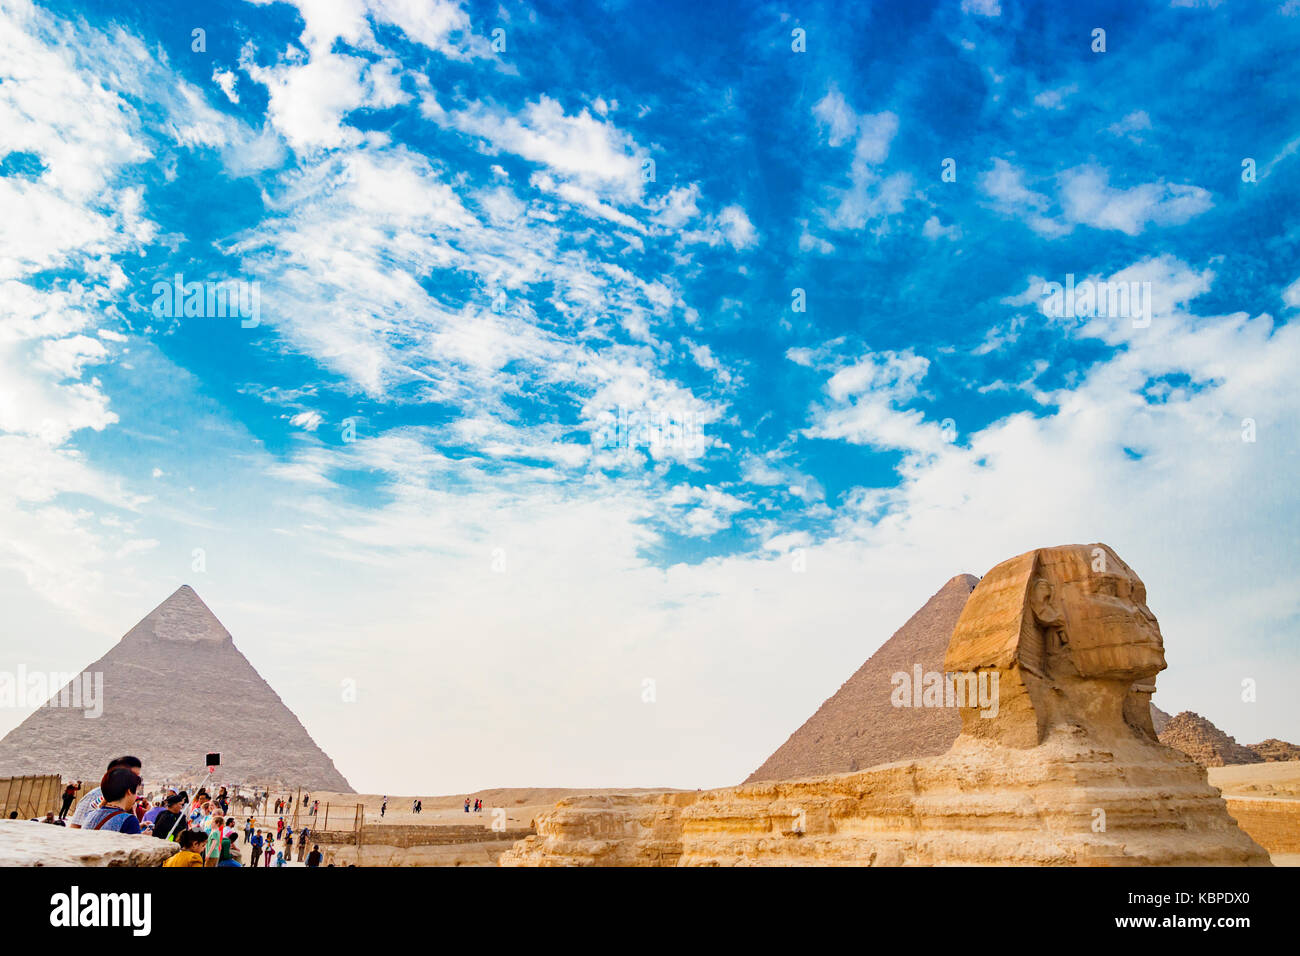 Admirer le sphinx au Caire, Egypte Photo Stock